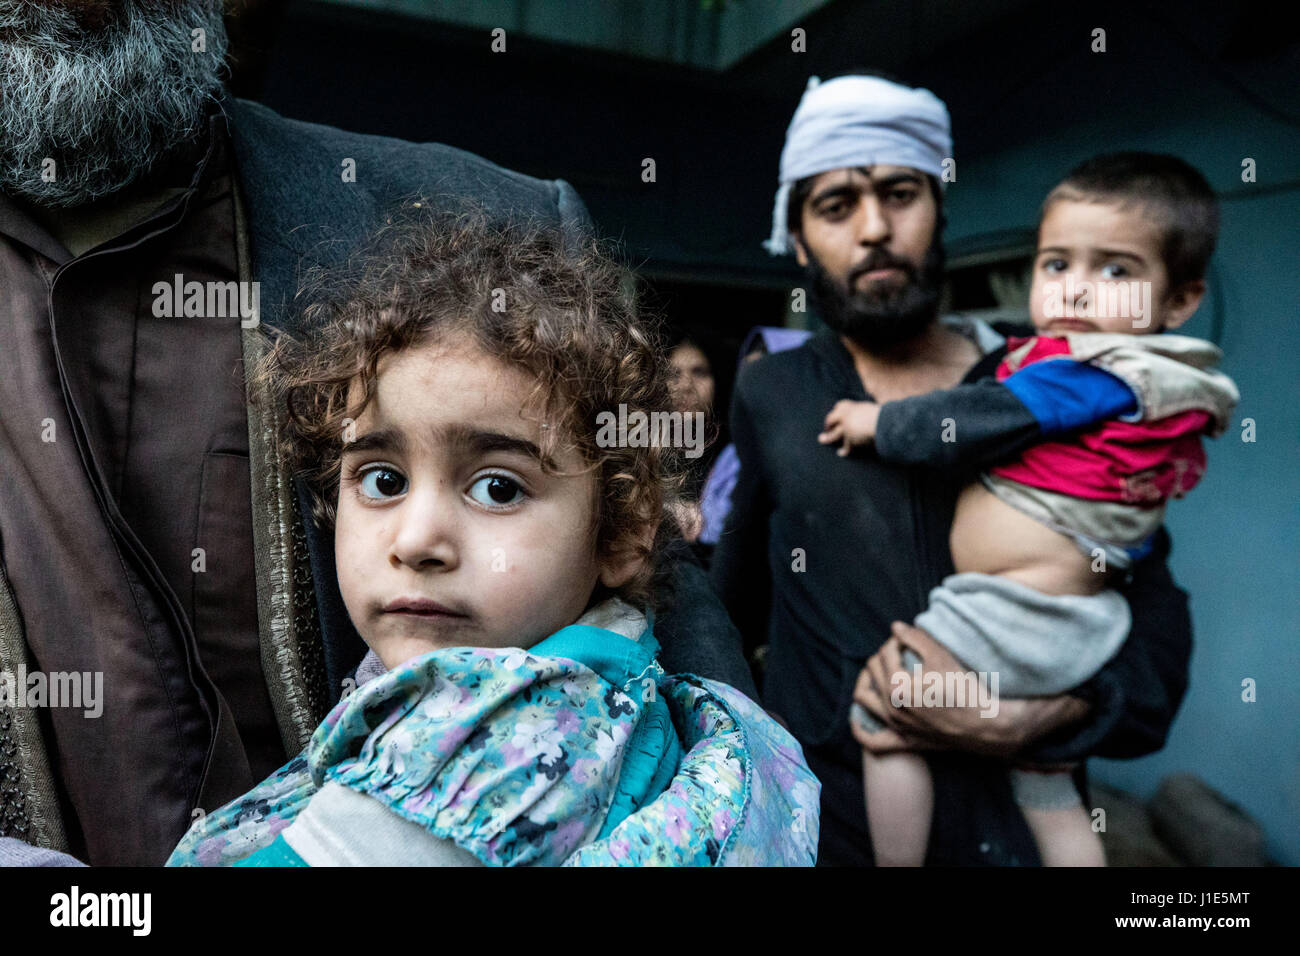 Mosul, Nineveh Province, Iraq. 19th Apr, 2017. Civilians are evacuated from a house in the Al Thawra neighborhood - Stock Image